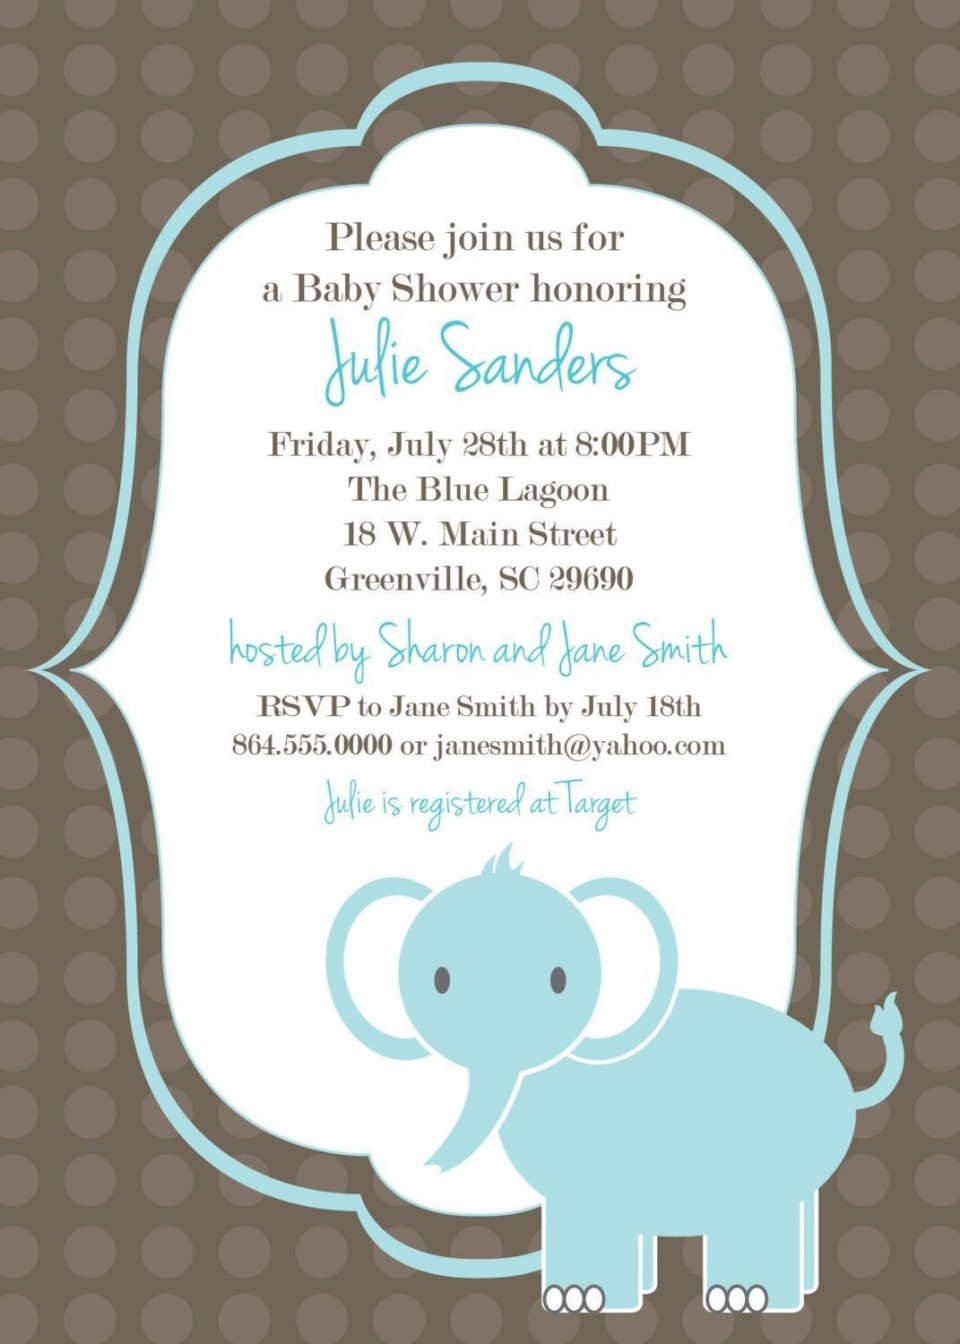 005 Fearsome Free Baby Shower Invitation Template Example  Printable For A Girl Microsoft Word960